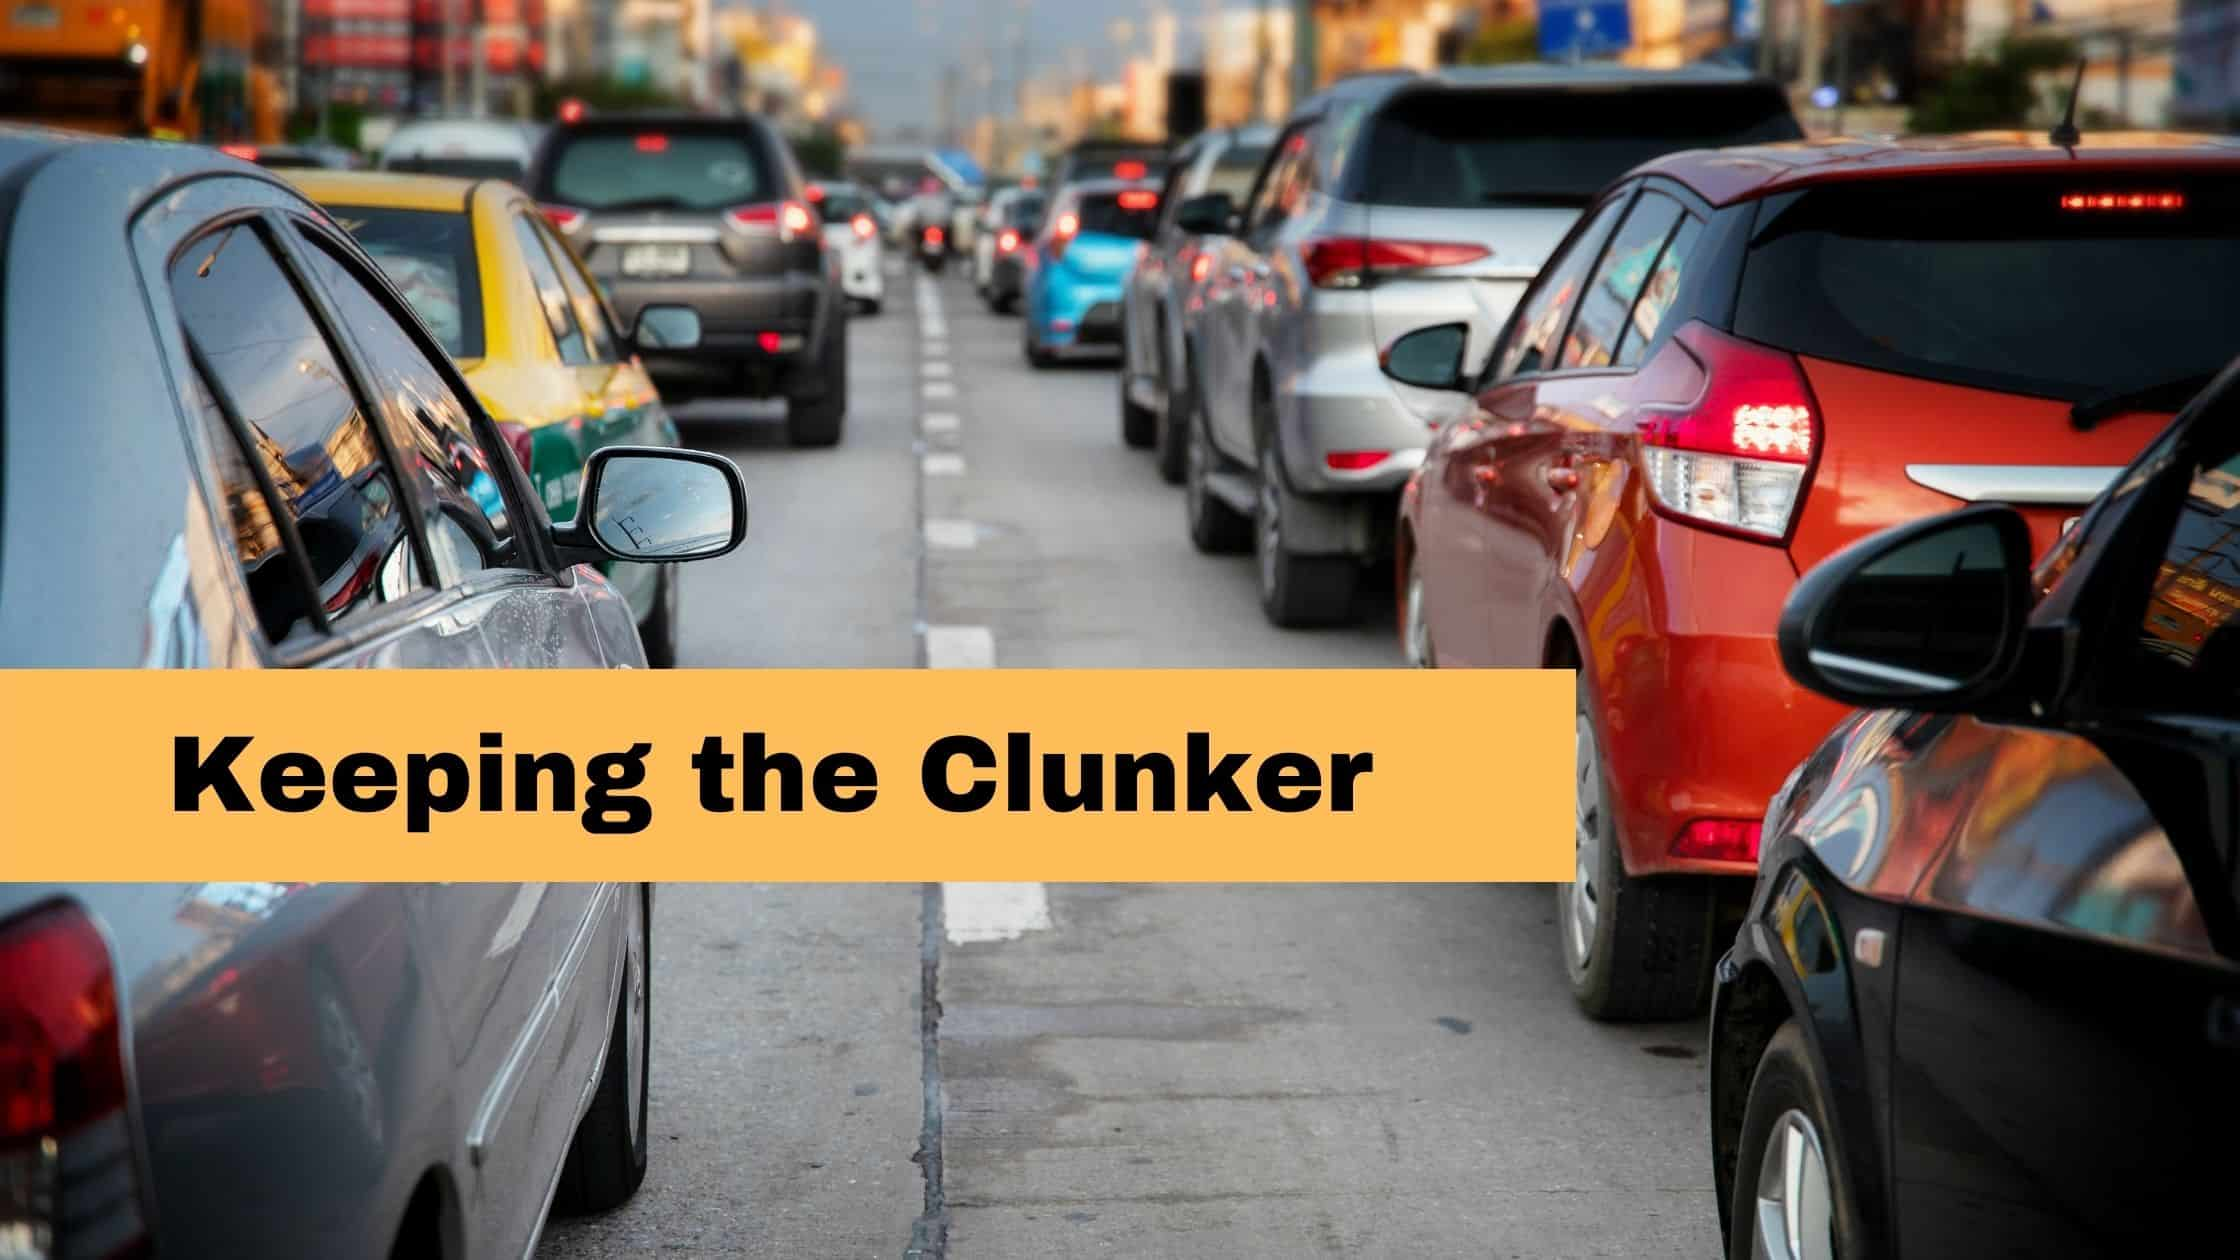 Keeping the Clunker